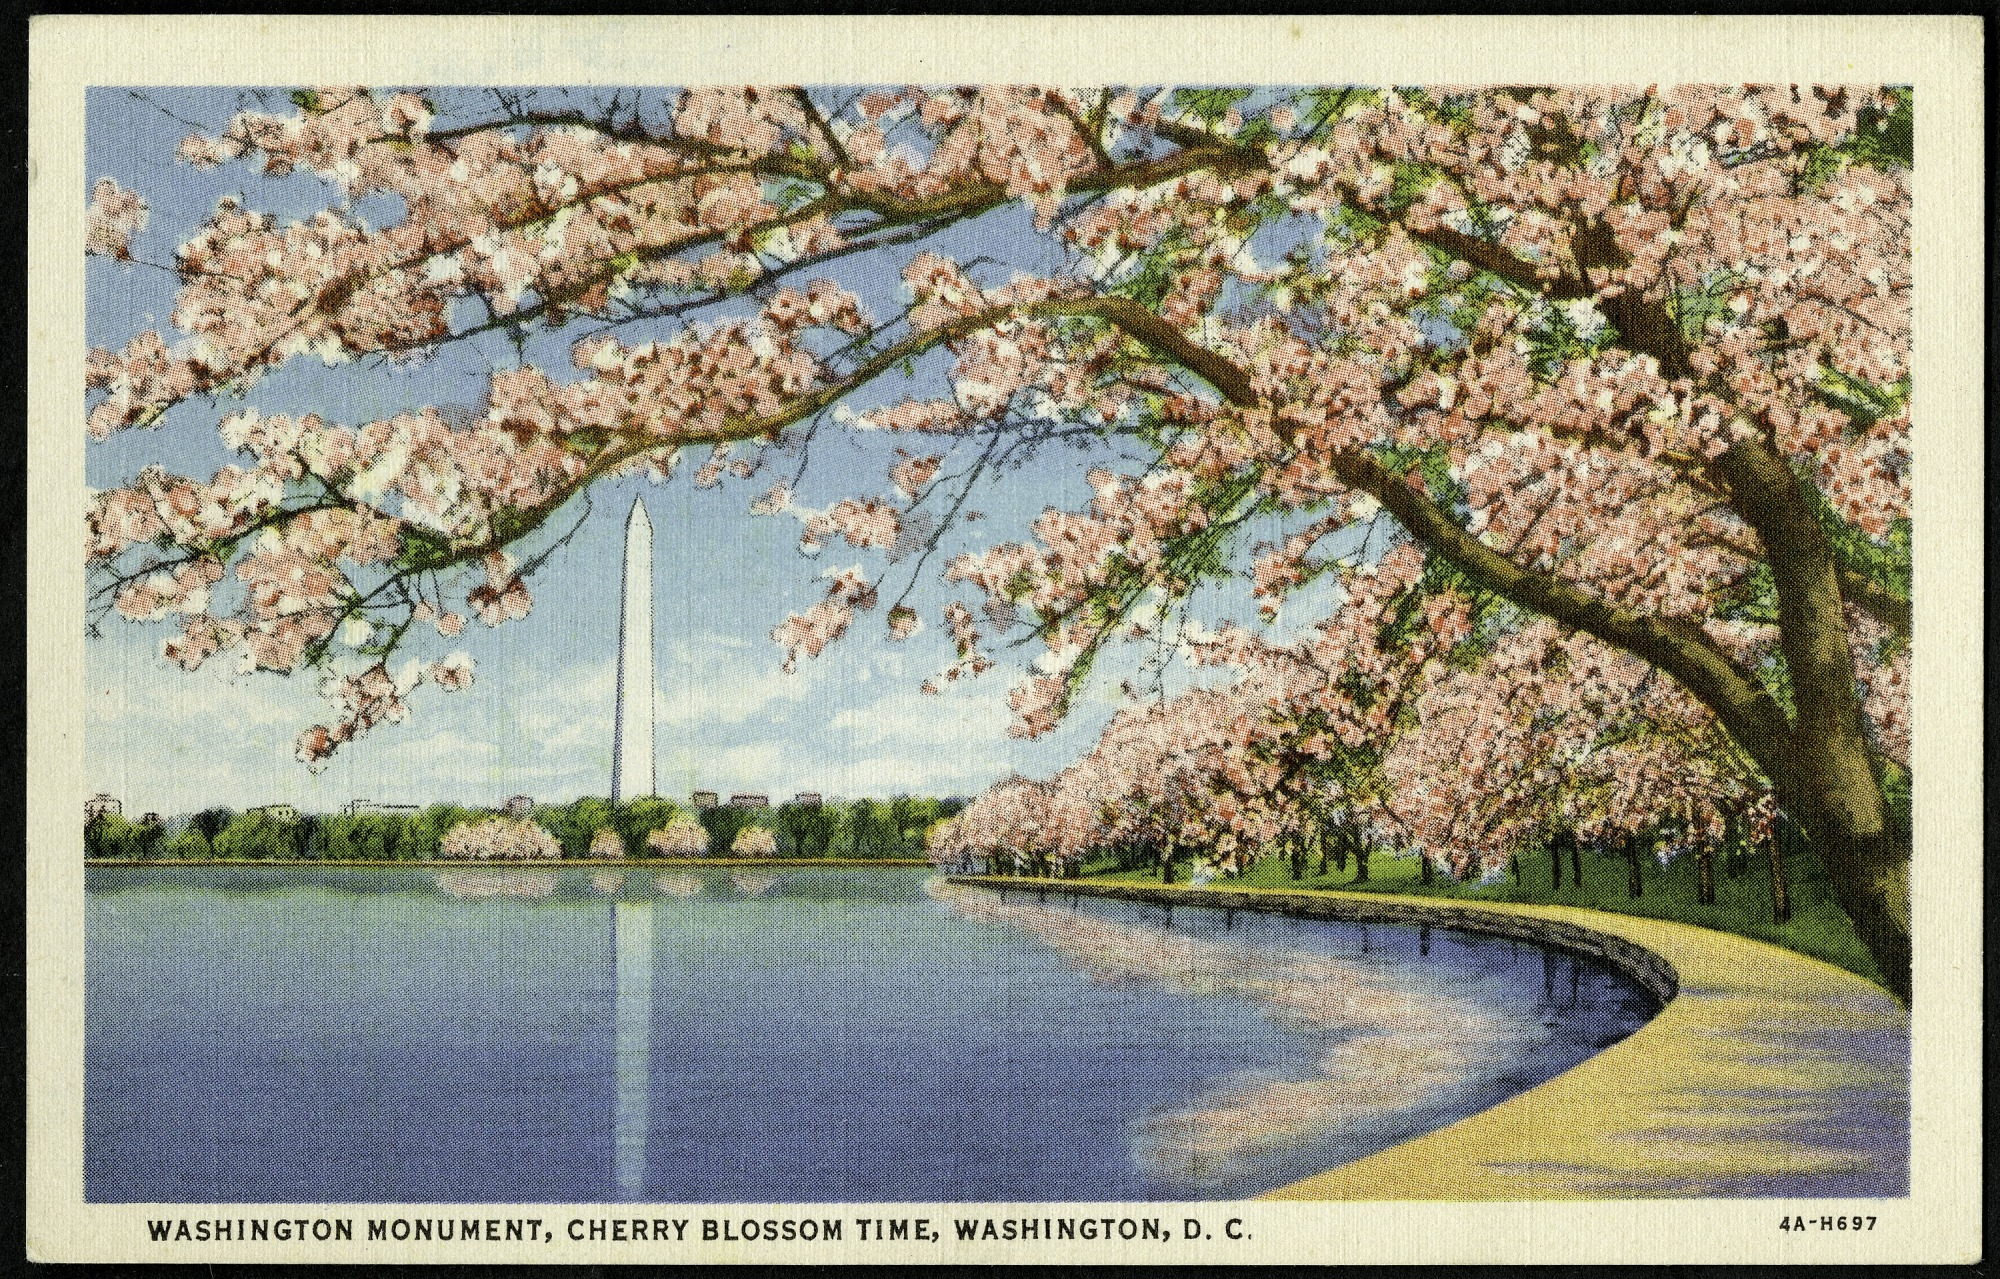 Postcard of Washington Monument during Cherry Blossom Time, by B.S. Reynolds Co. Washington, DC, 1934, Smithsonian Archives - History Div, SIA2013-06677 (front) and SIA2013-06678 (back).